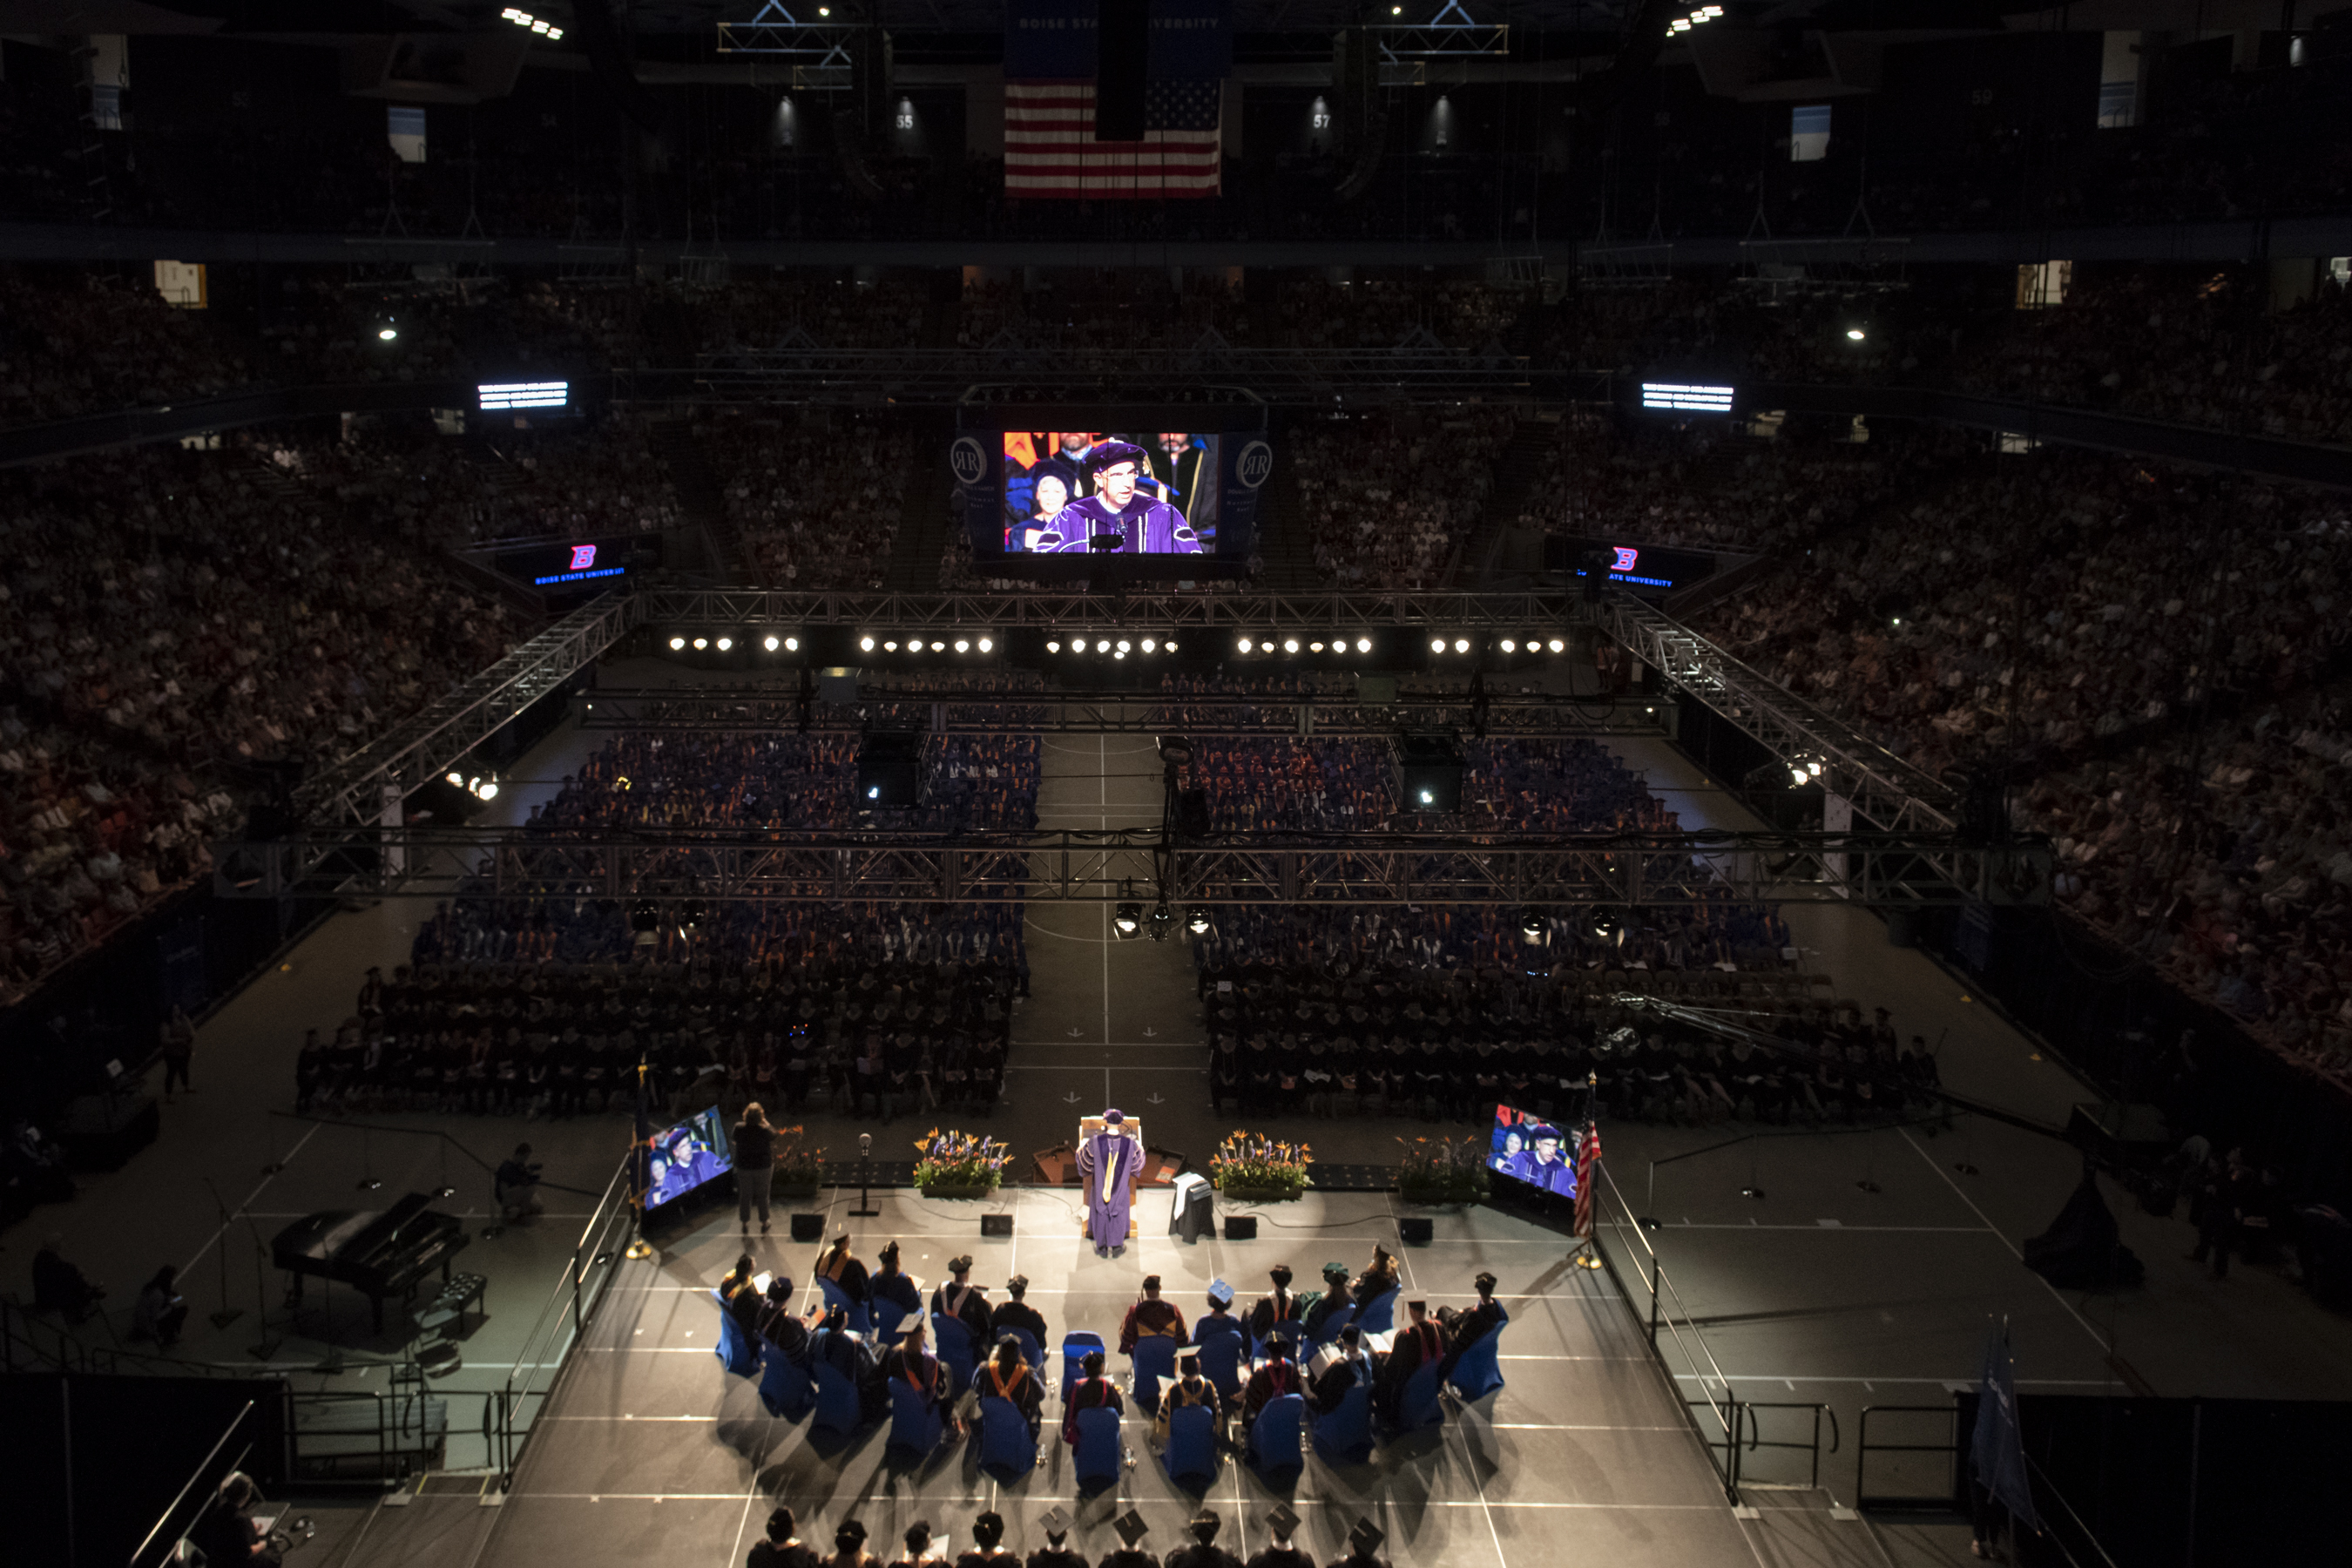 Boise State Spring Commencement 2019, afternoon ceremony, photo Patrick Sweeney